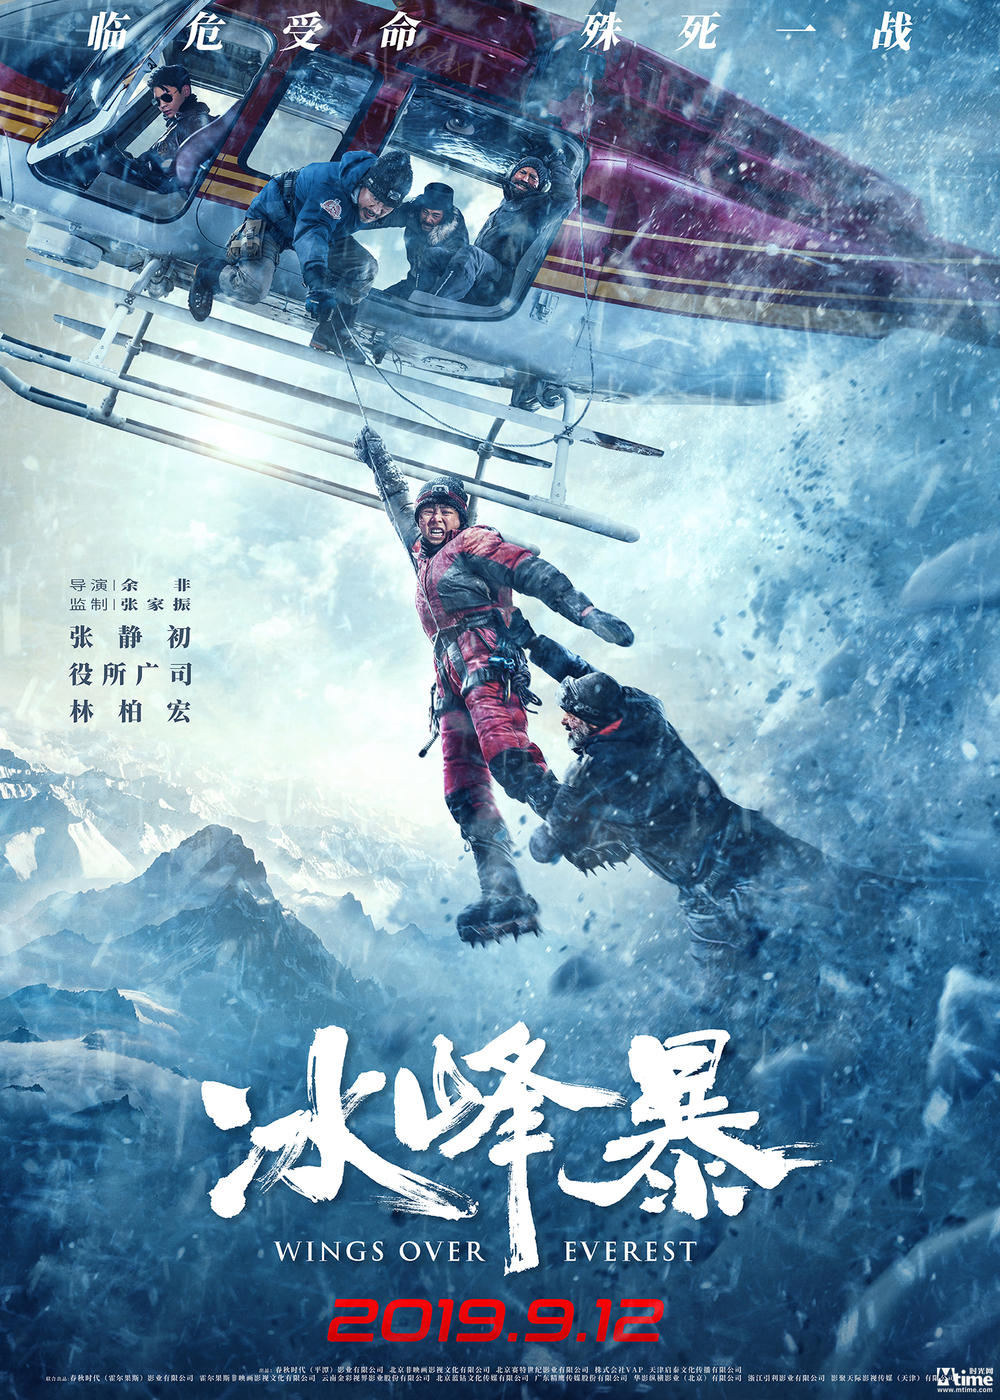 Wings Over Everest (2019) Chinese 720p WEB-DL 1GB ESubs